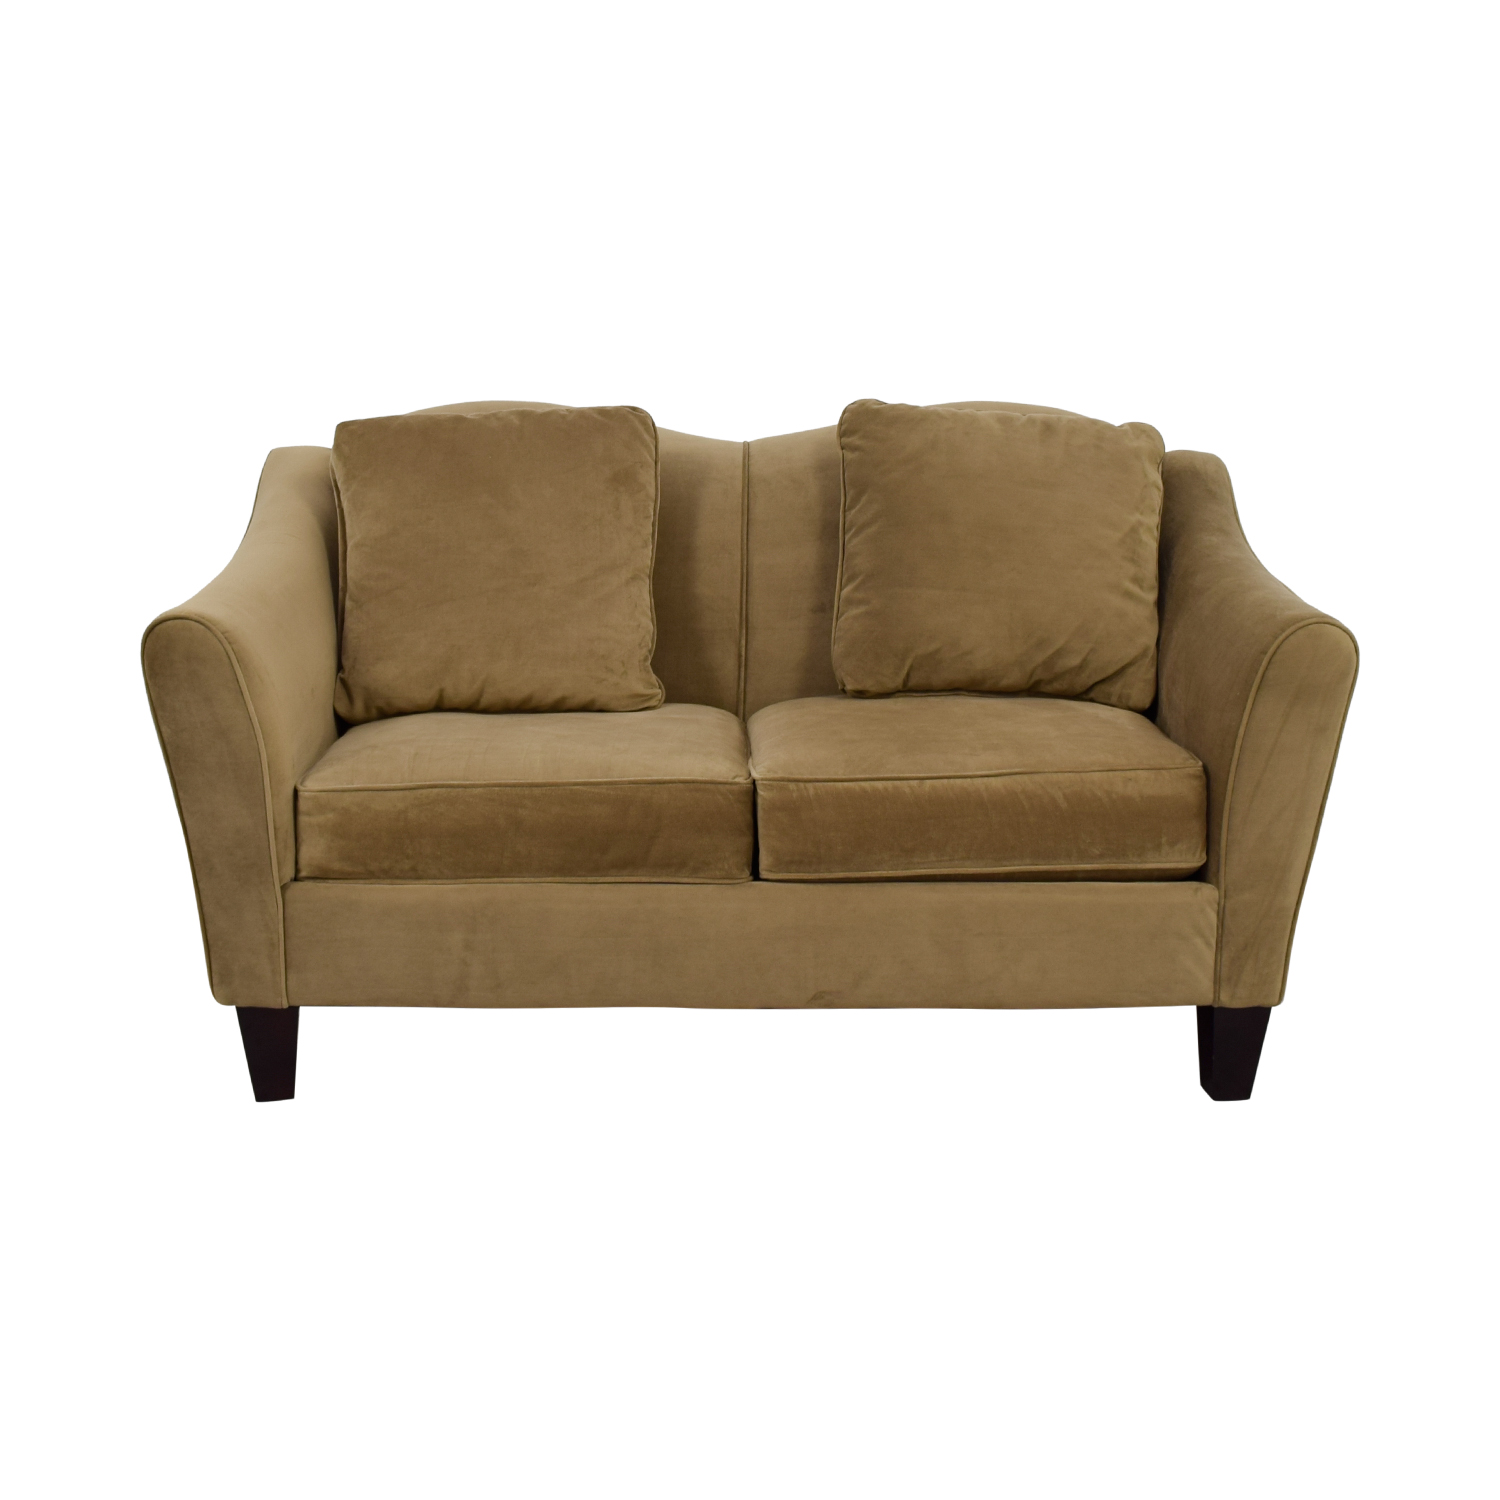 Raymour & Flanigan Beige Two-Cushion Loveseat sale